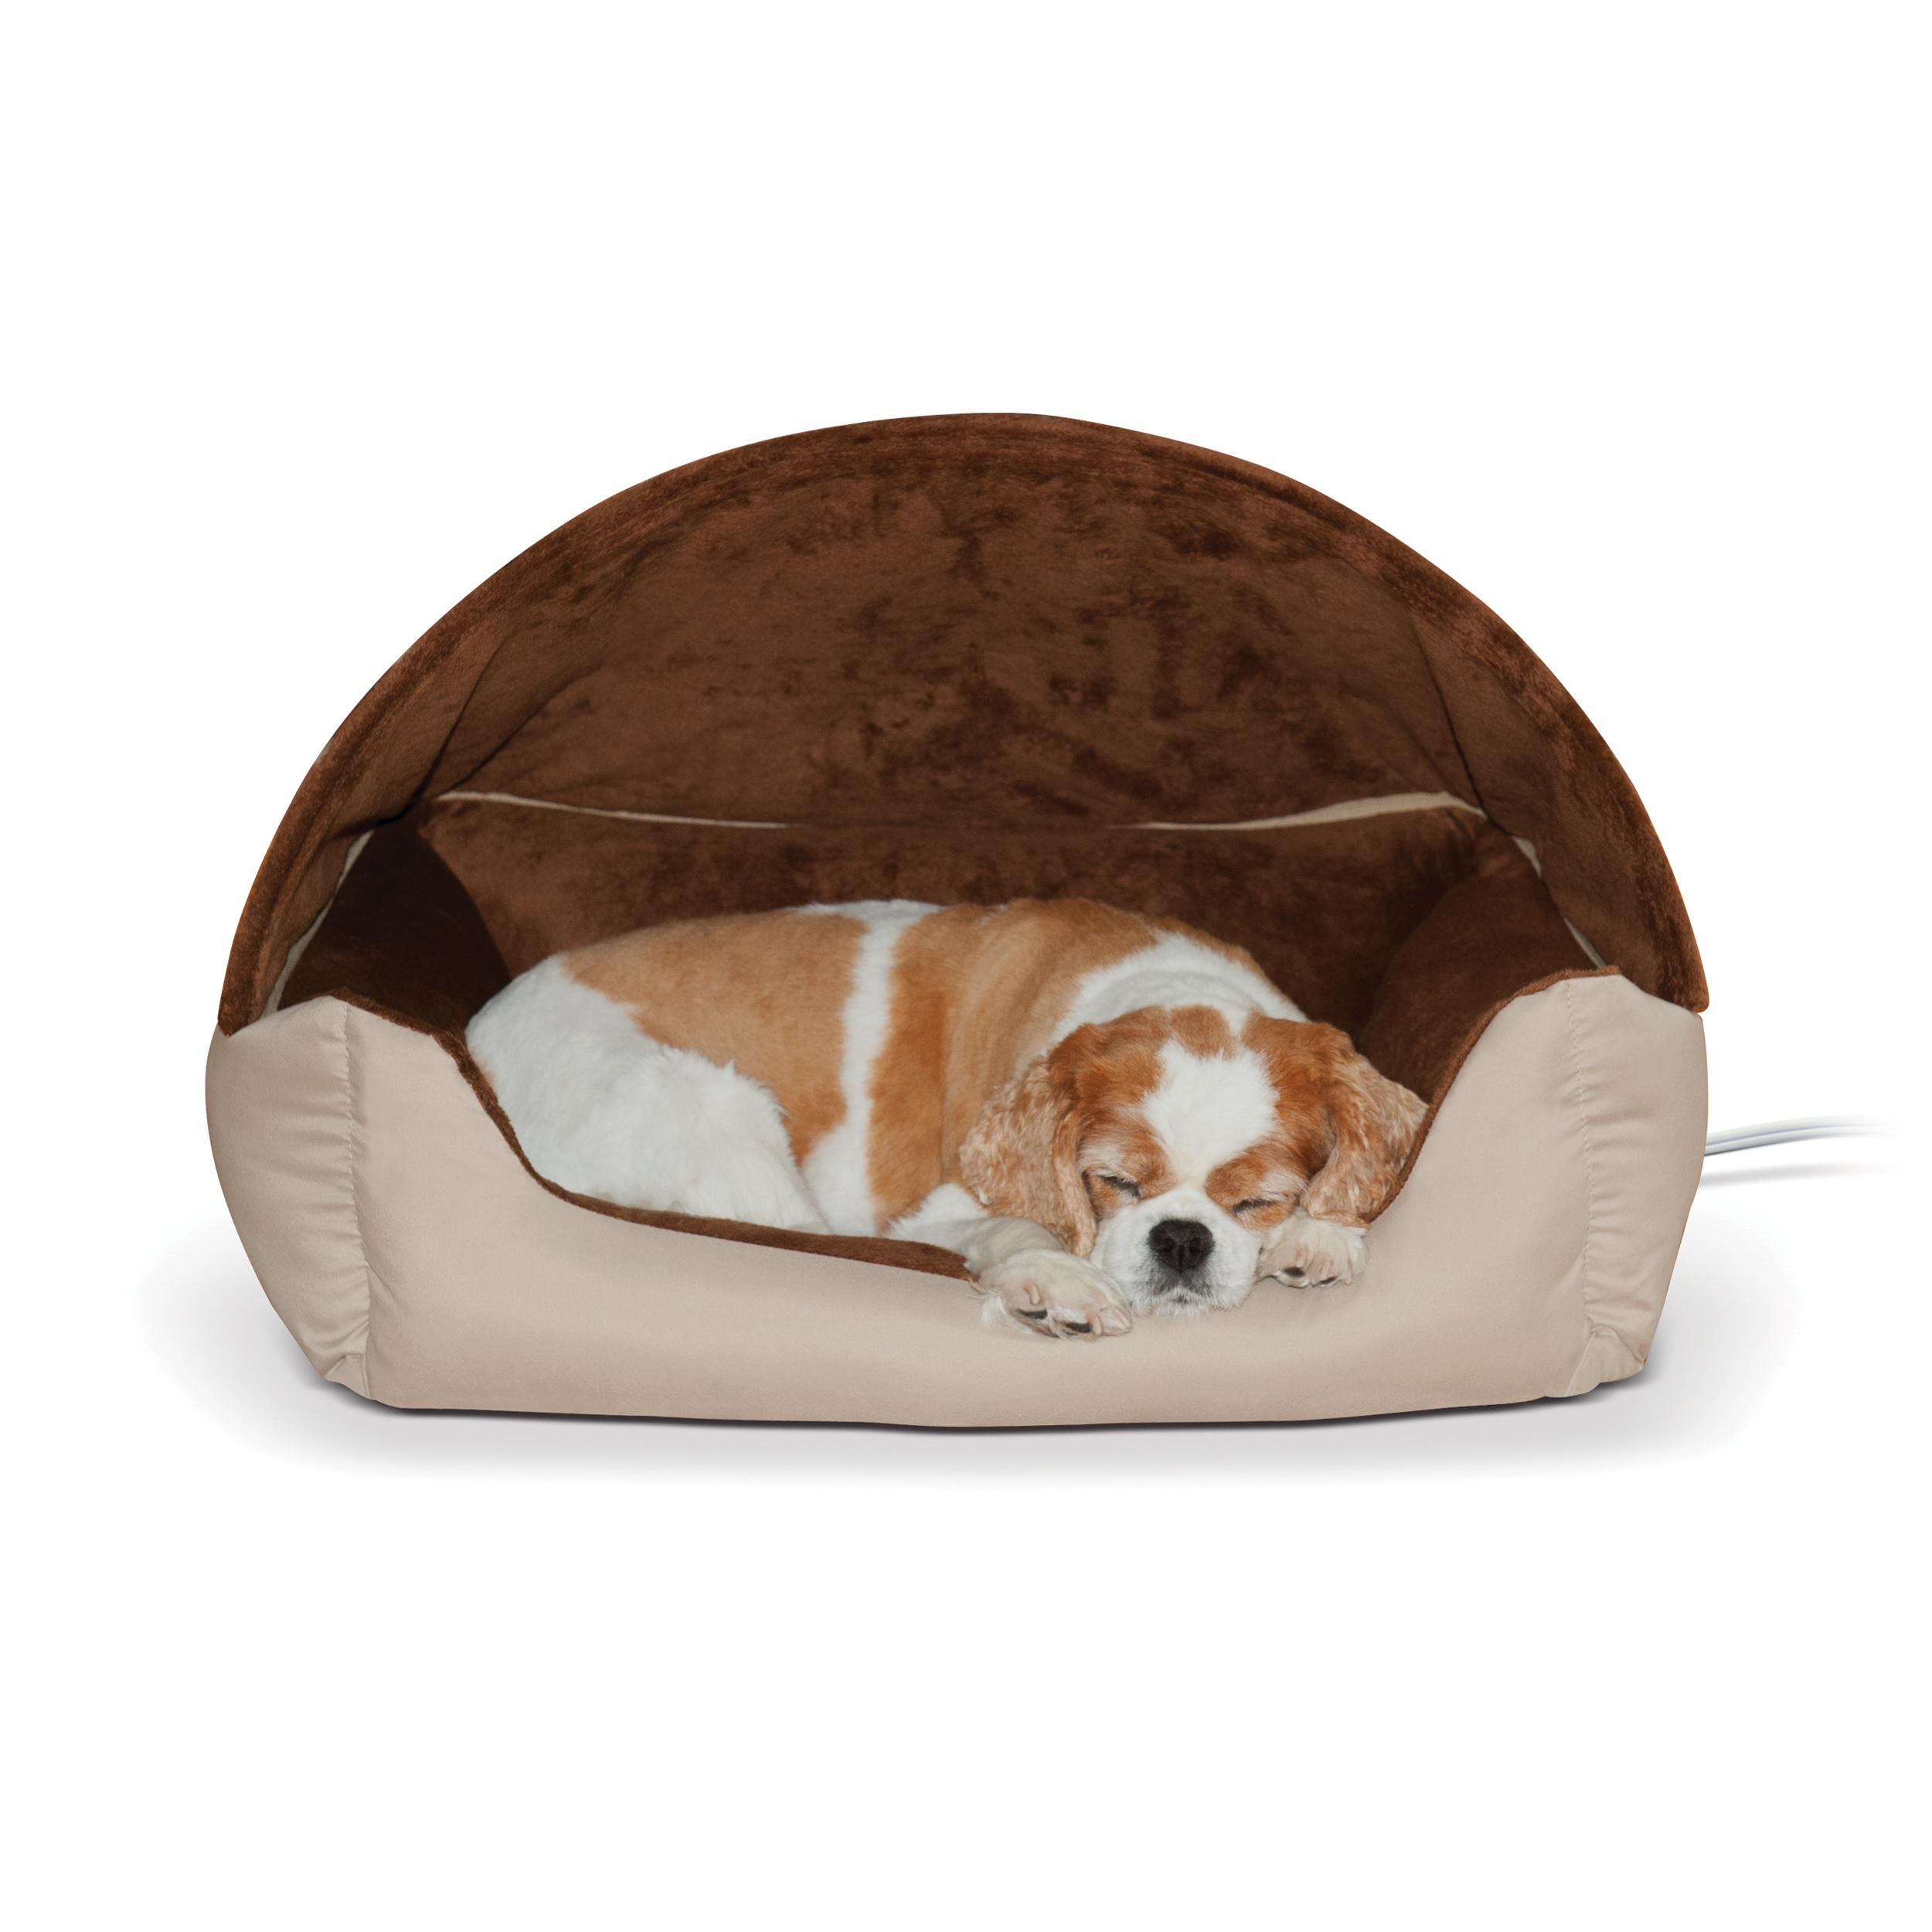 Amazon.com : K&H Pet Products Thermo-Hooded Lounger Heated